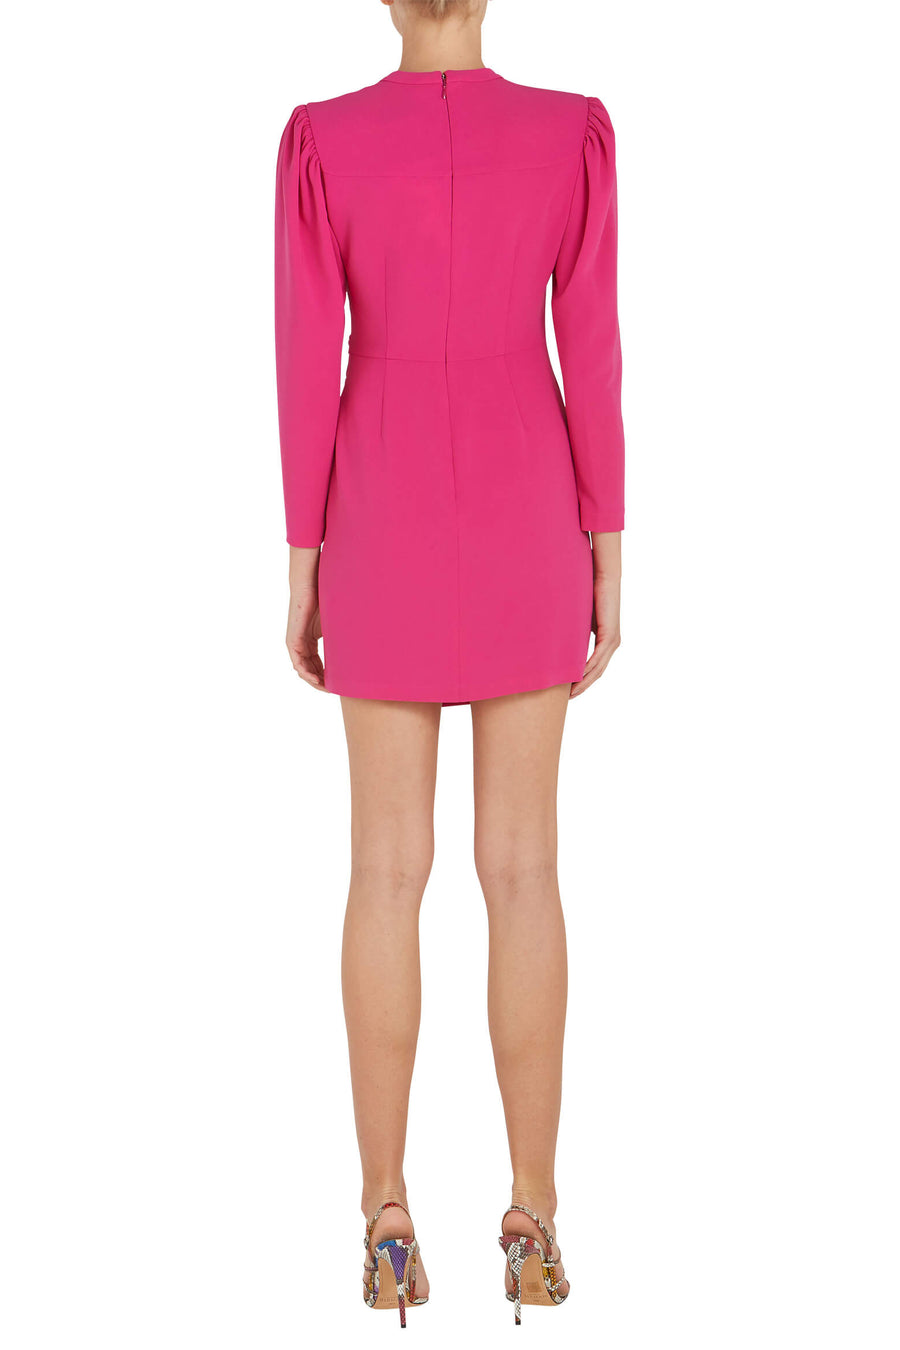 Jane Dress in Shocking Pink from The New Trend